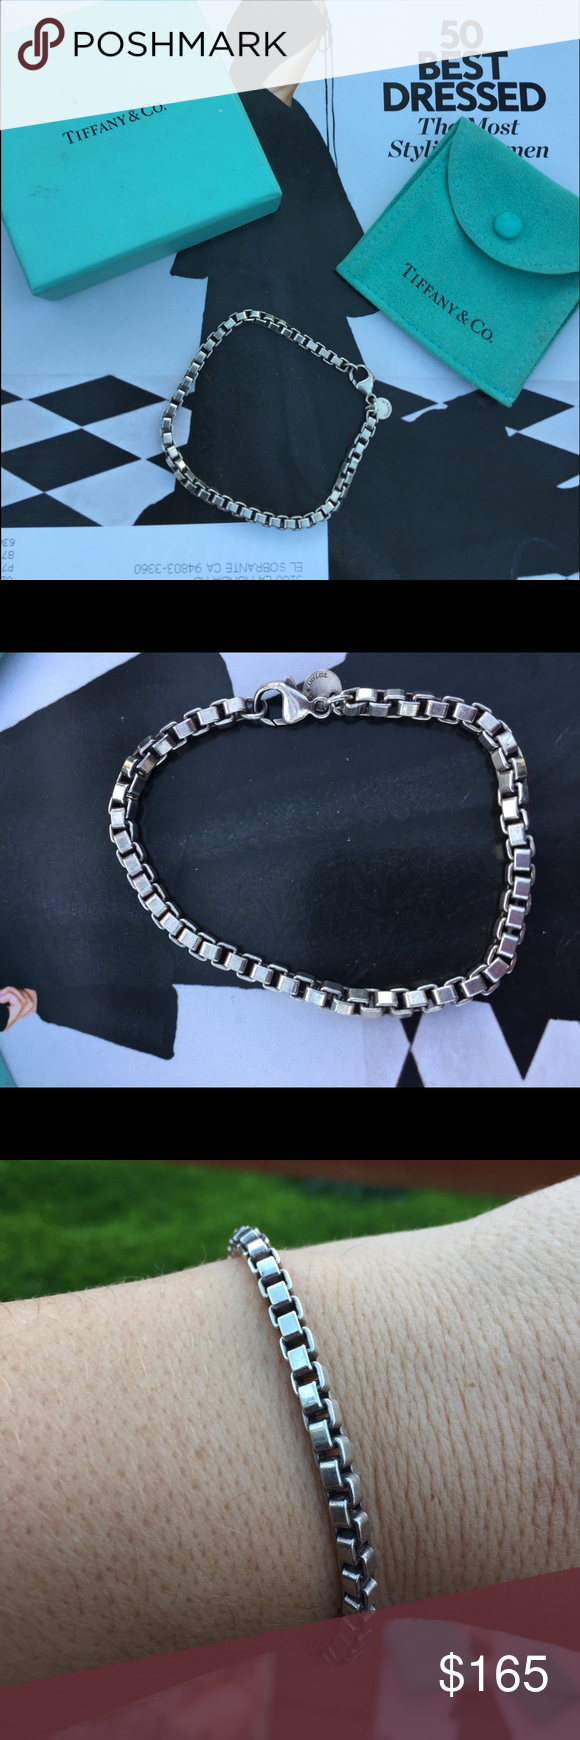 Tiffany and company Venetian bracelet Sterling silver Tiffany & Co Venetian box link bracelet. I have never worn this been in dust bag basically since was purchased. Length 7.5 Authentic I have a dust bag for it but no box. Tiffany & Co. Jewelry Bracelets